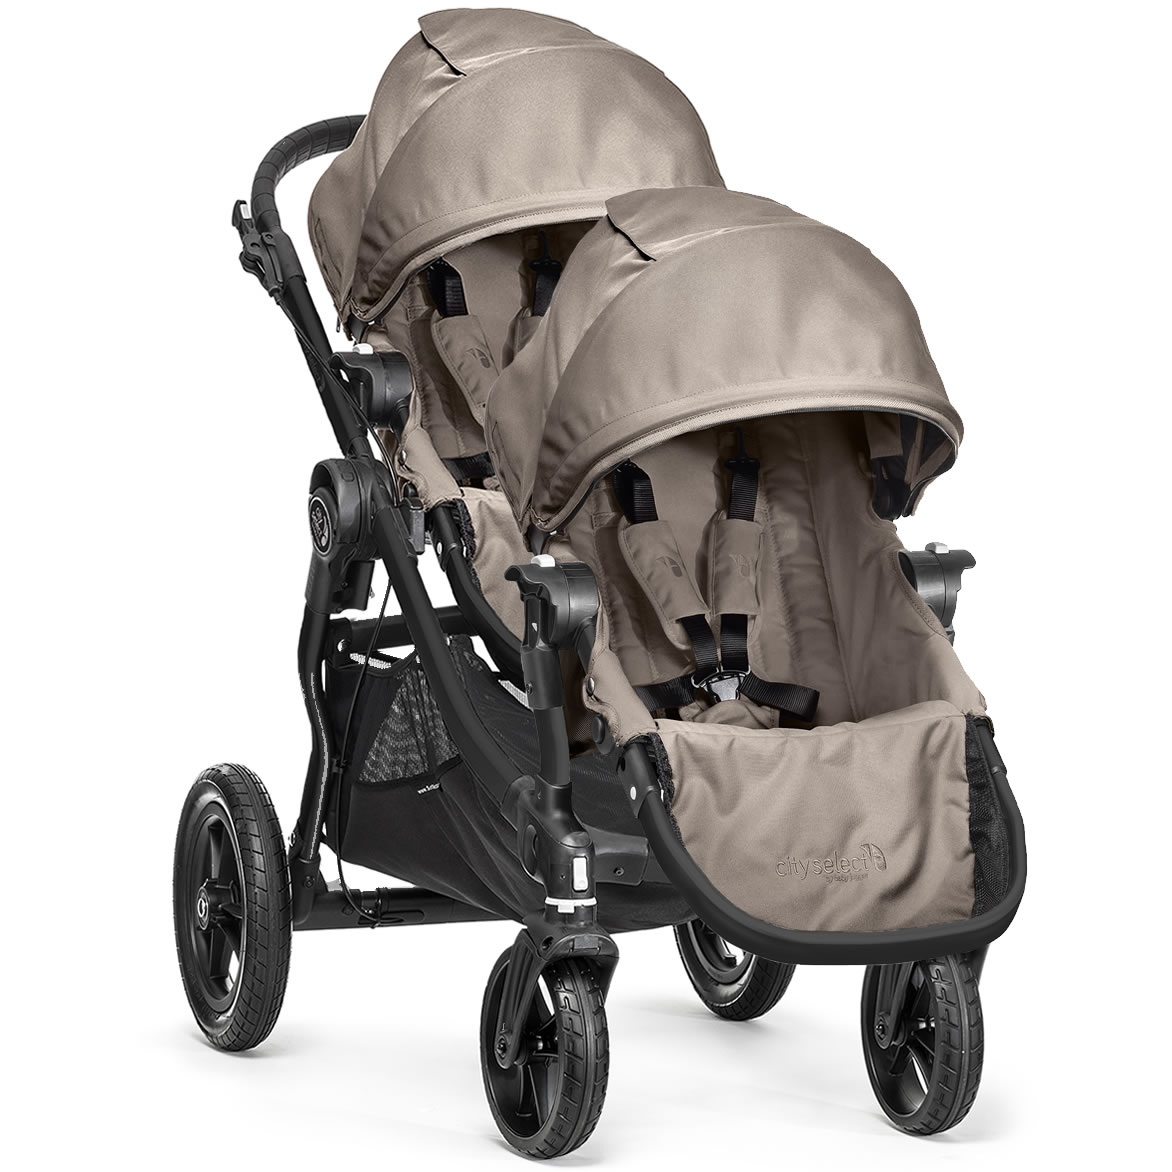 Baby Jogger City Select Double Stroller - Sand (2014)